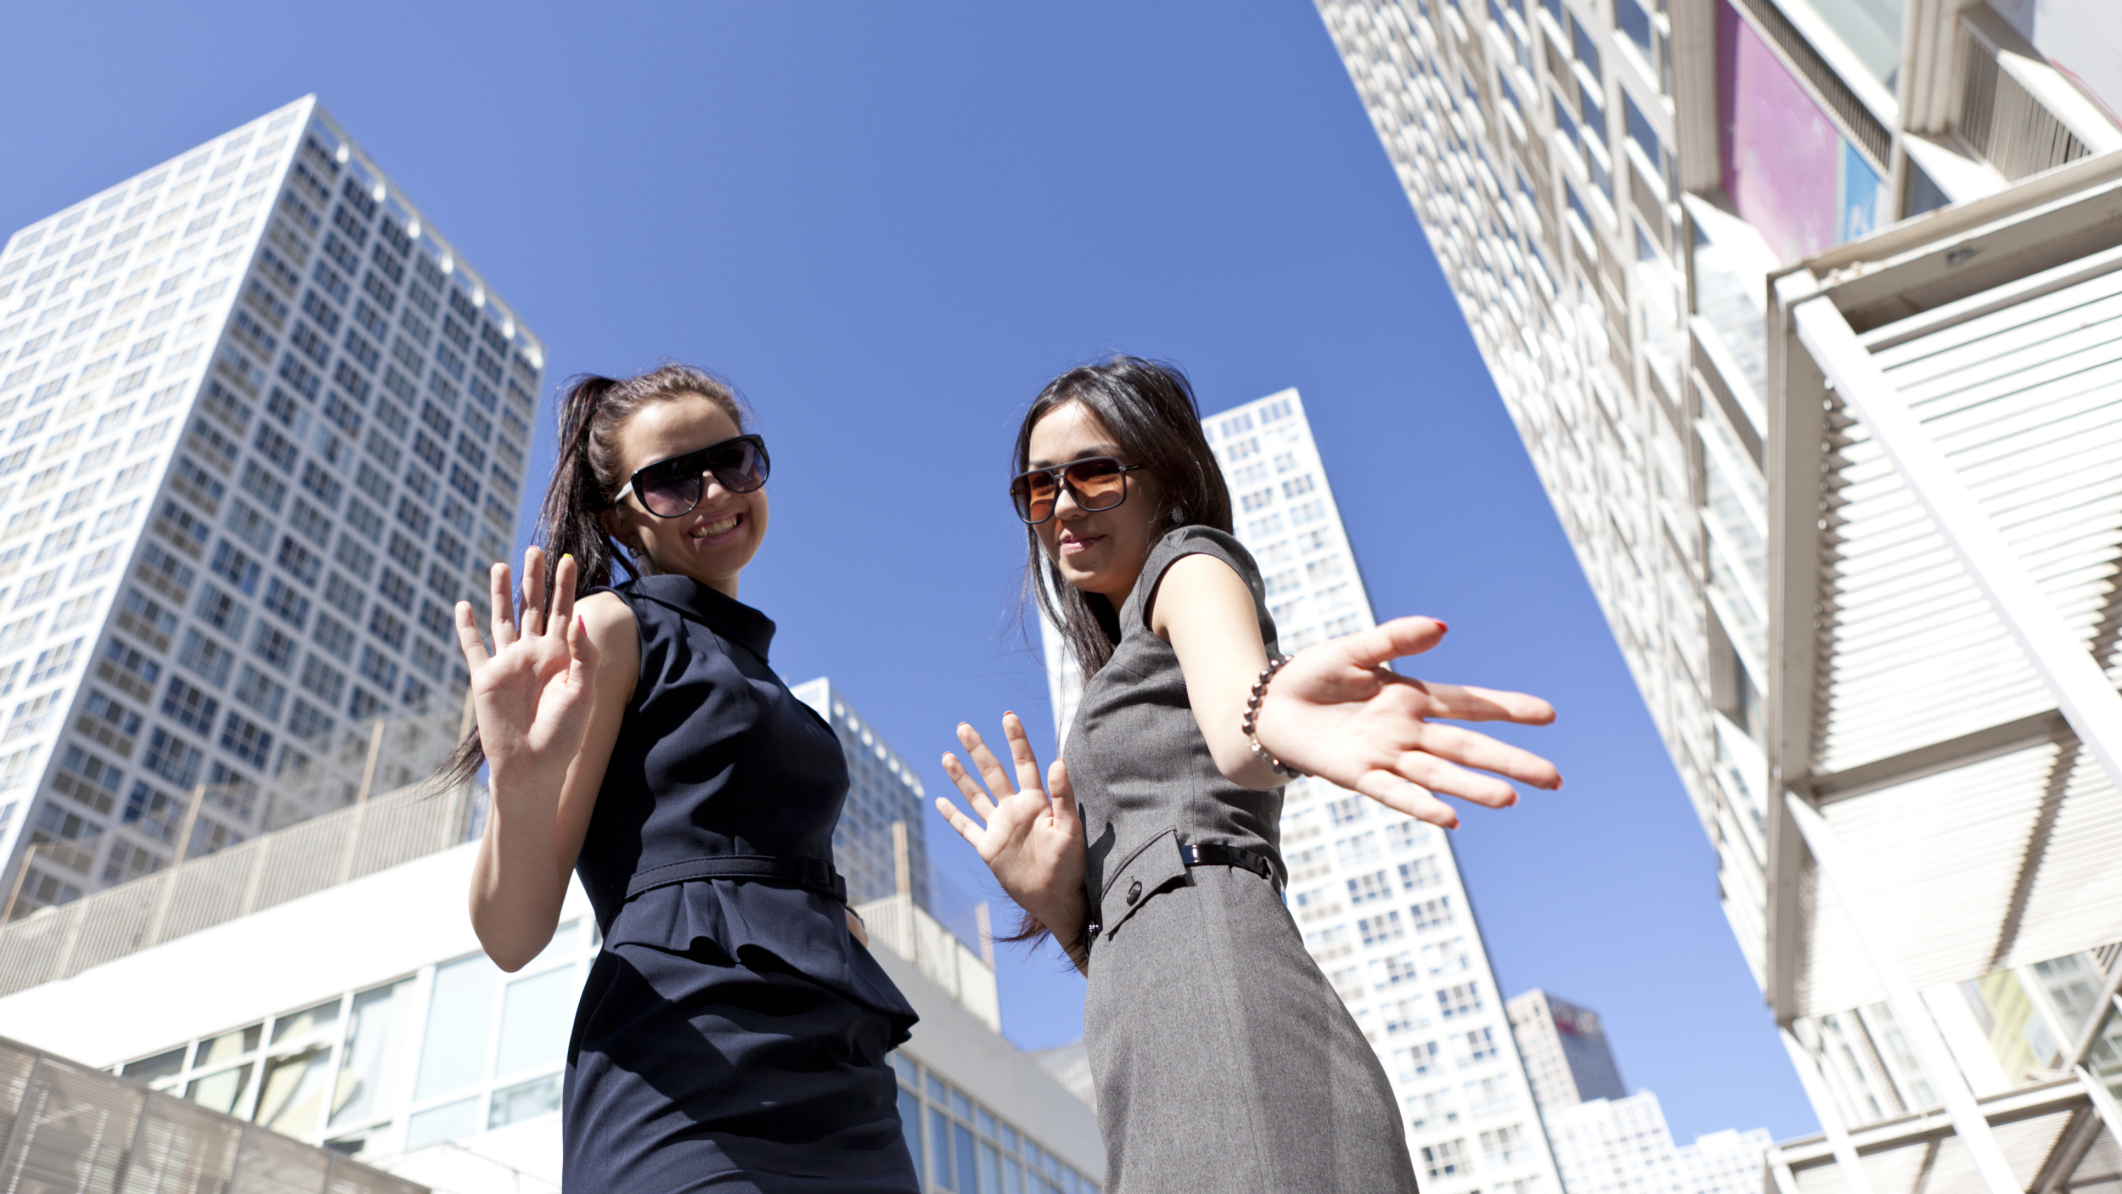 People, Well-dressed, Confidence, Happiness, Carefree, City, Success, Business, Horizontal, Waist Up, Outdoors, 20-24 Years, Sunglasses, Low Angle View, China, Caucasian Ethnicity, Smiling, Waving, Day, Beijing, Global Business, Skyscraper, Adult, Young Adult, Color Image, Downtown District, City Life, Two People, Only Young Women, Only Women, Businesswoman, Photography, Tourism, Real People, Capital Cities, Clear Sky, Adults Only, Beautiful People, Beautiful Woman, Corporate Business, Y120810.